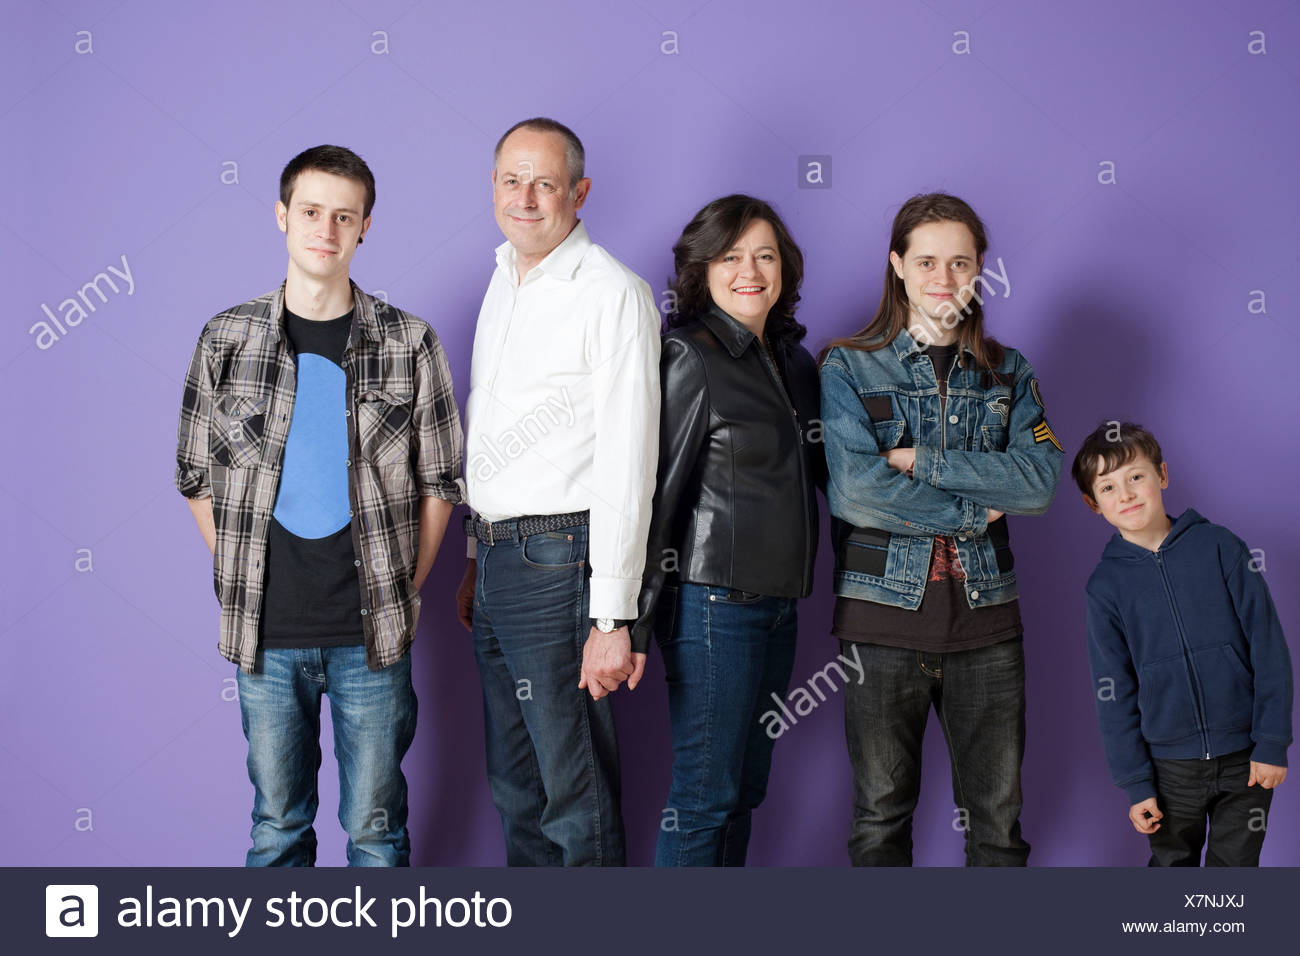 Portrait of family of five in front of purple background - Stock Image